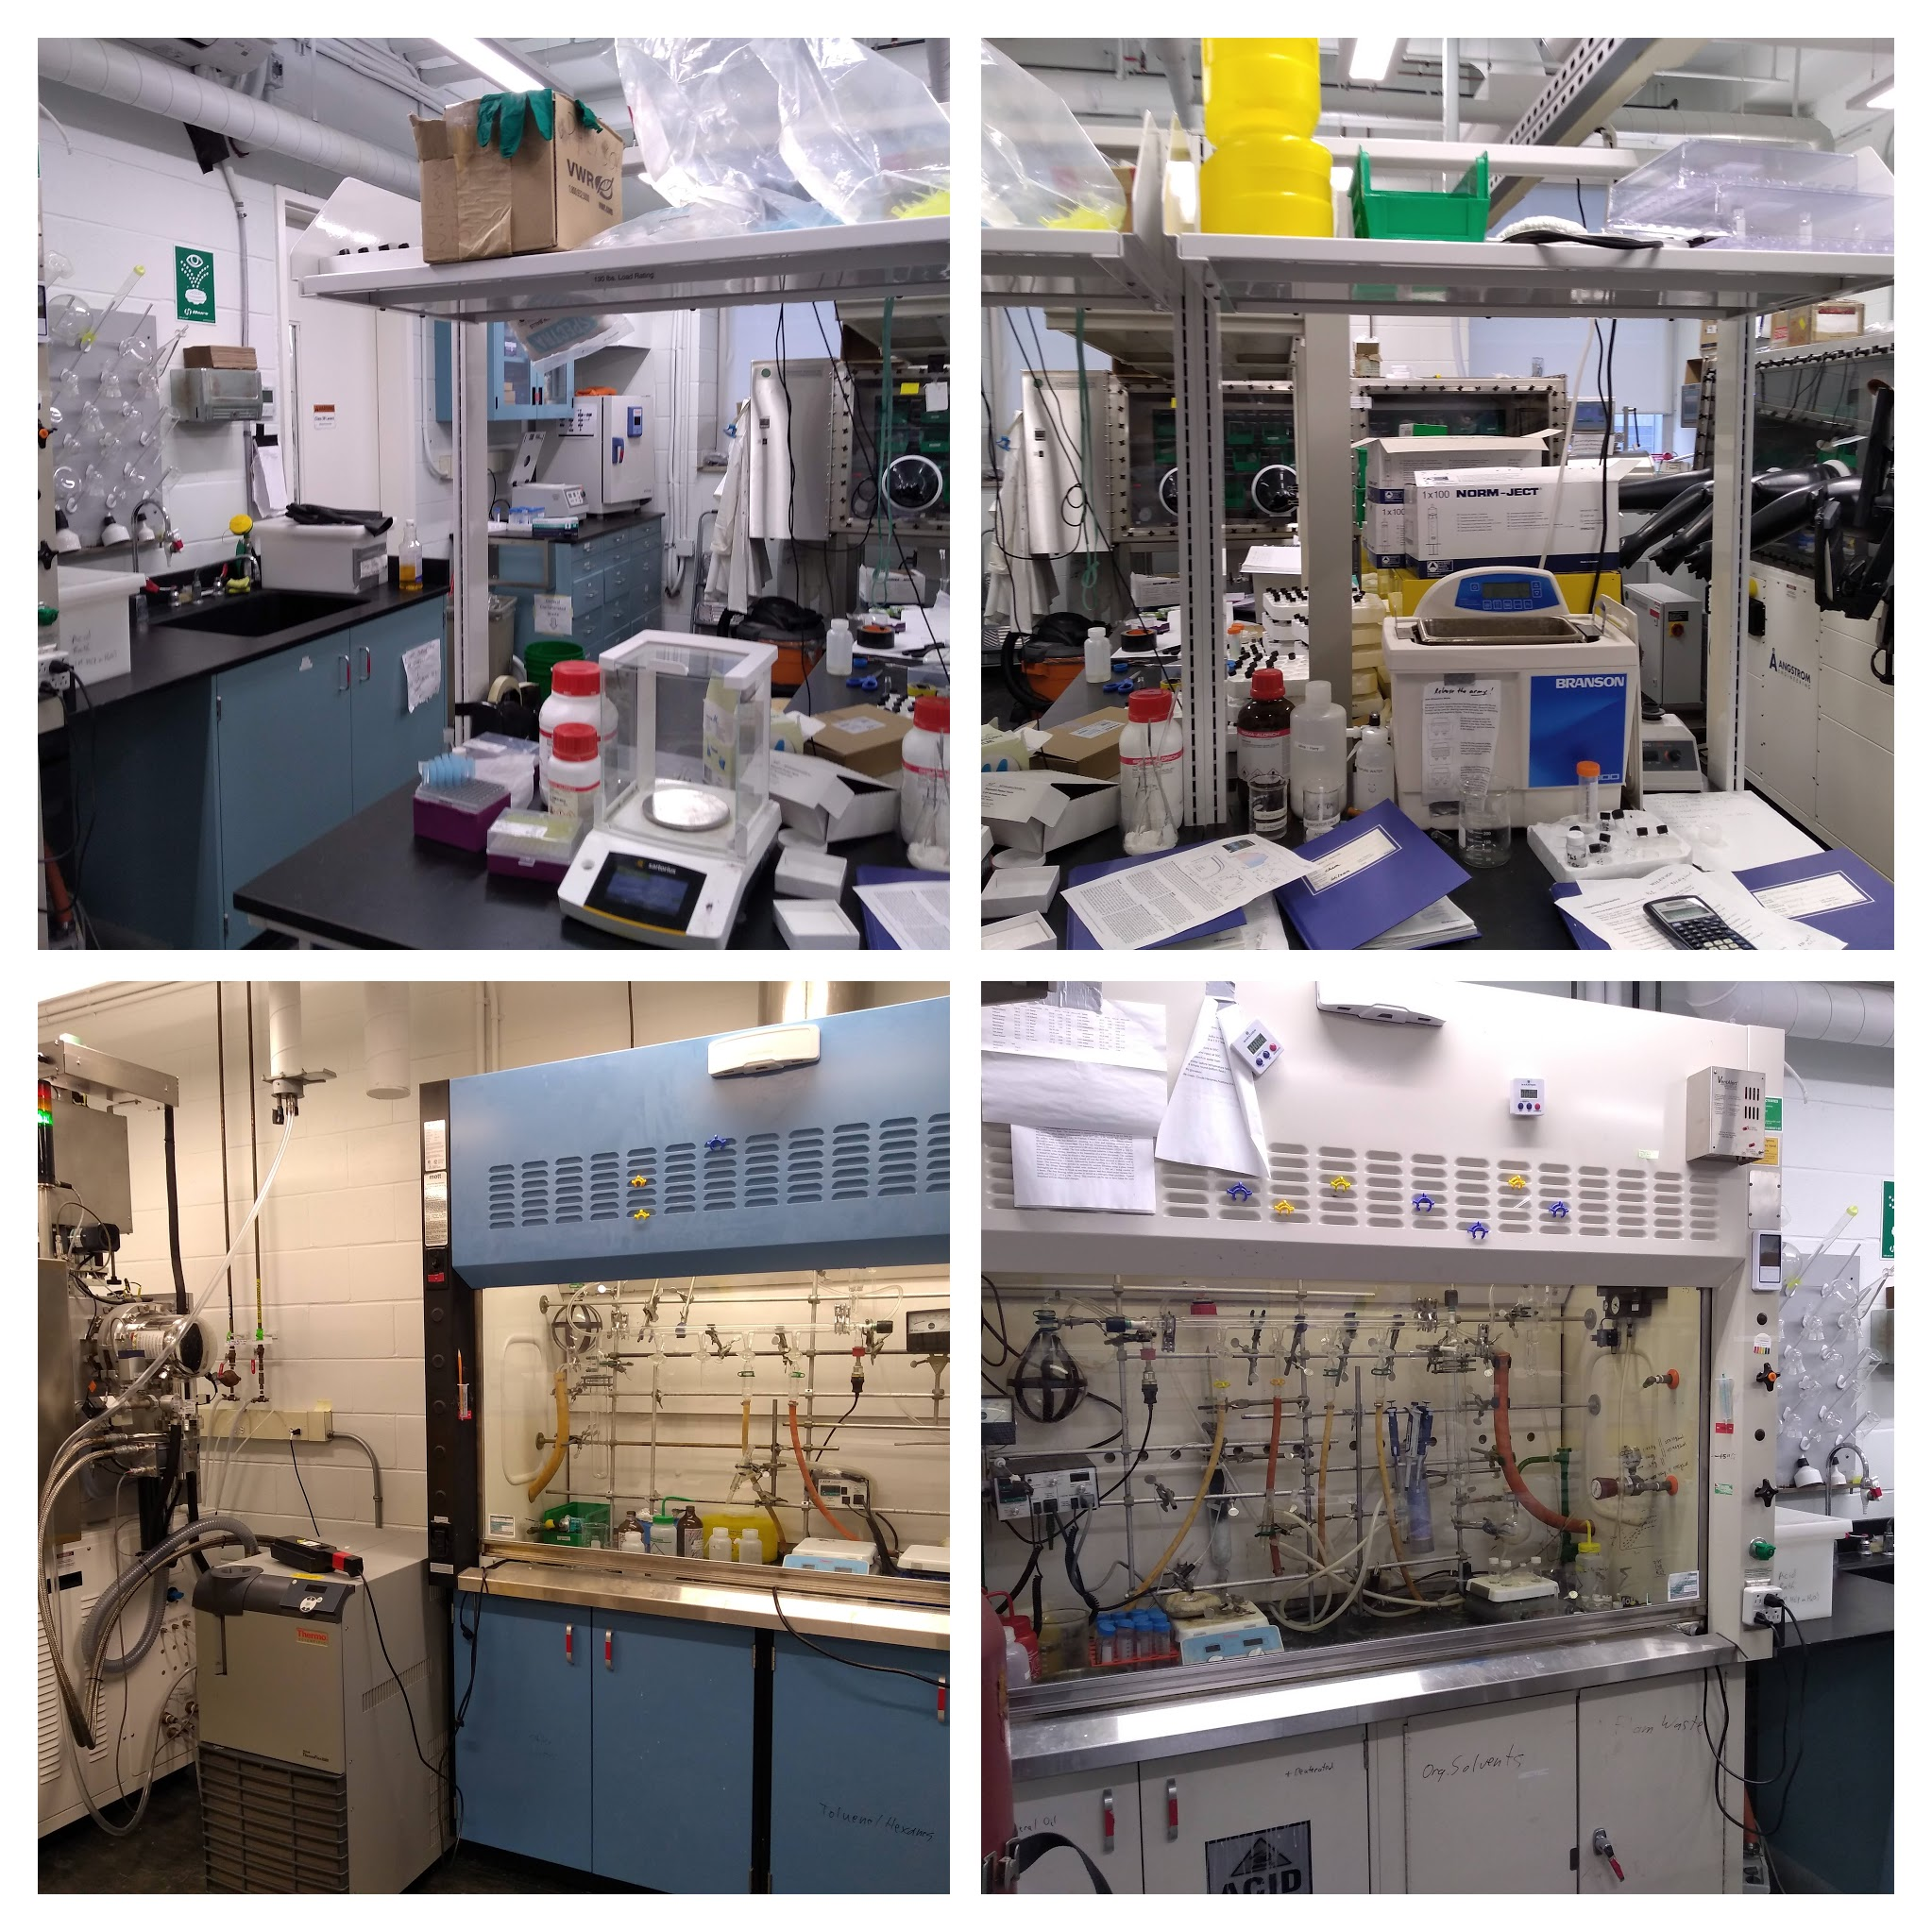 All squared away for shut-down in the synthesis/fabrication room WilsonLab